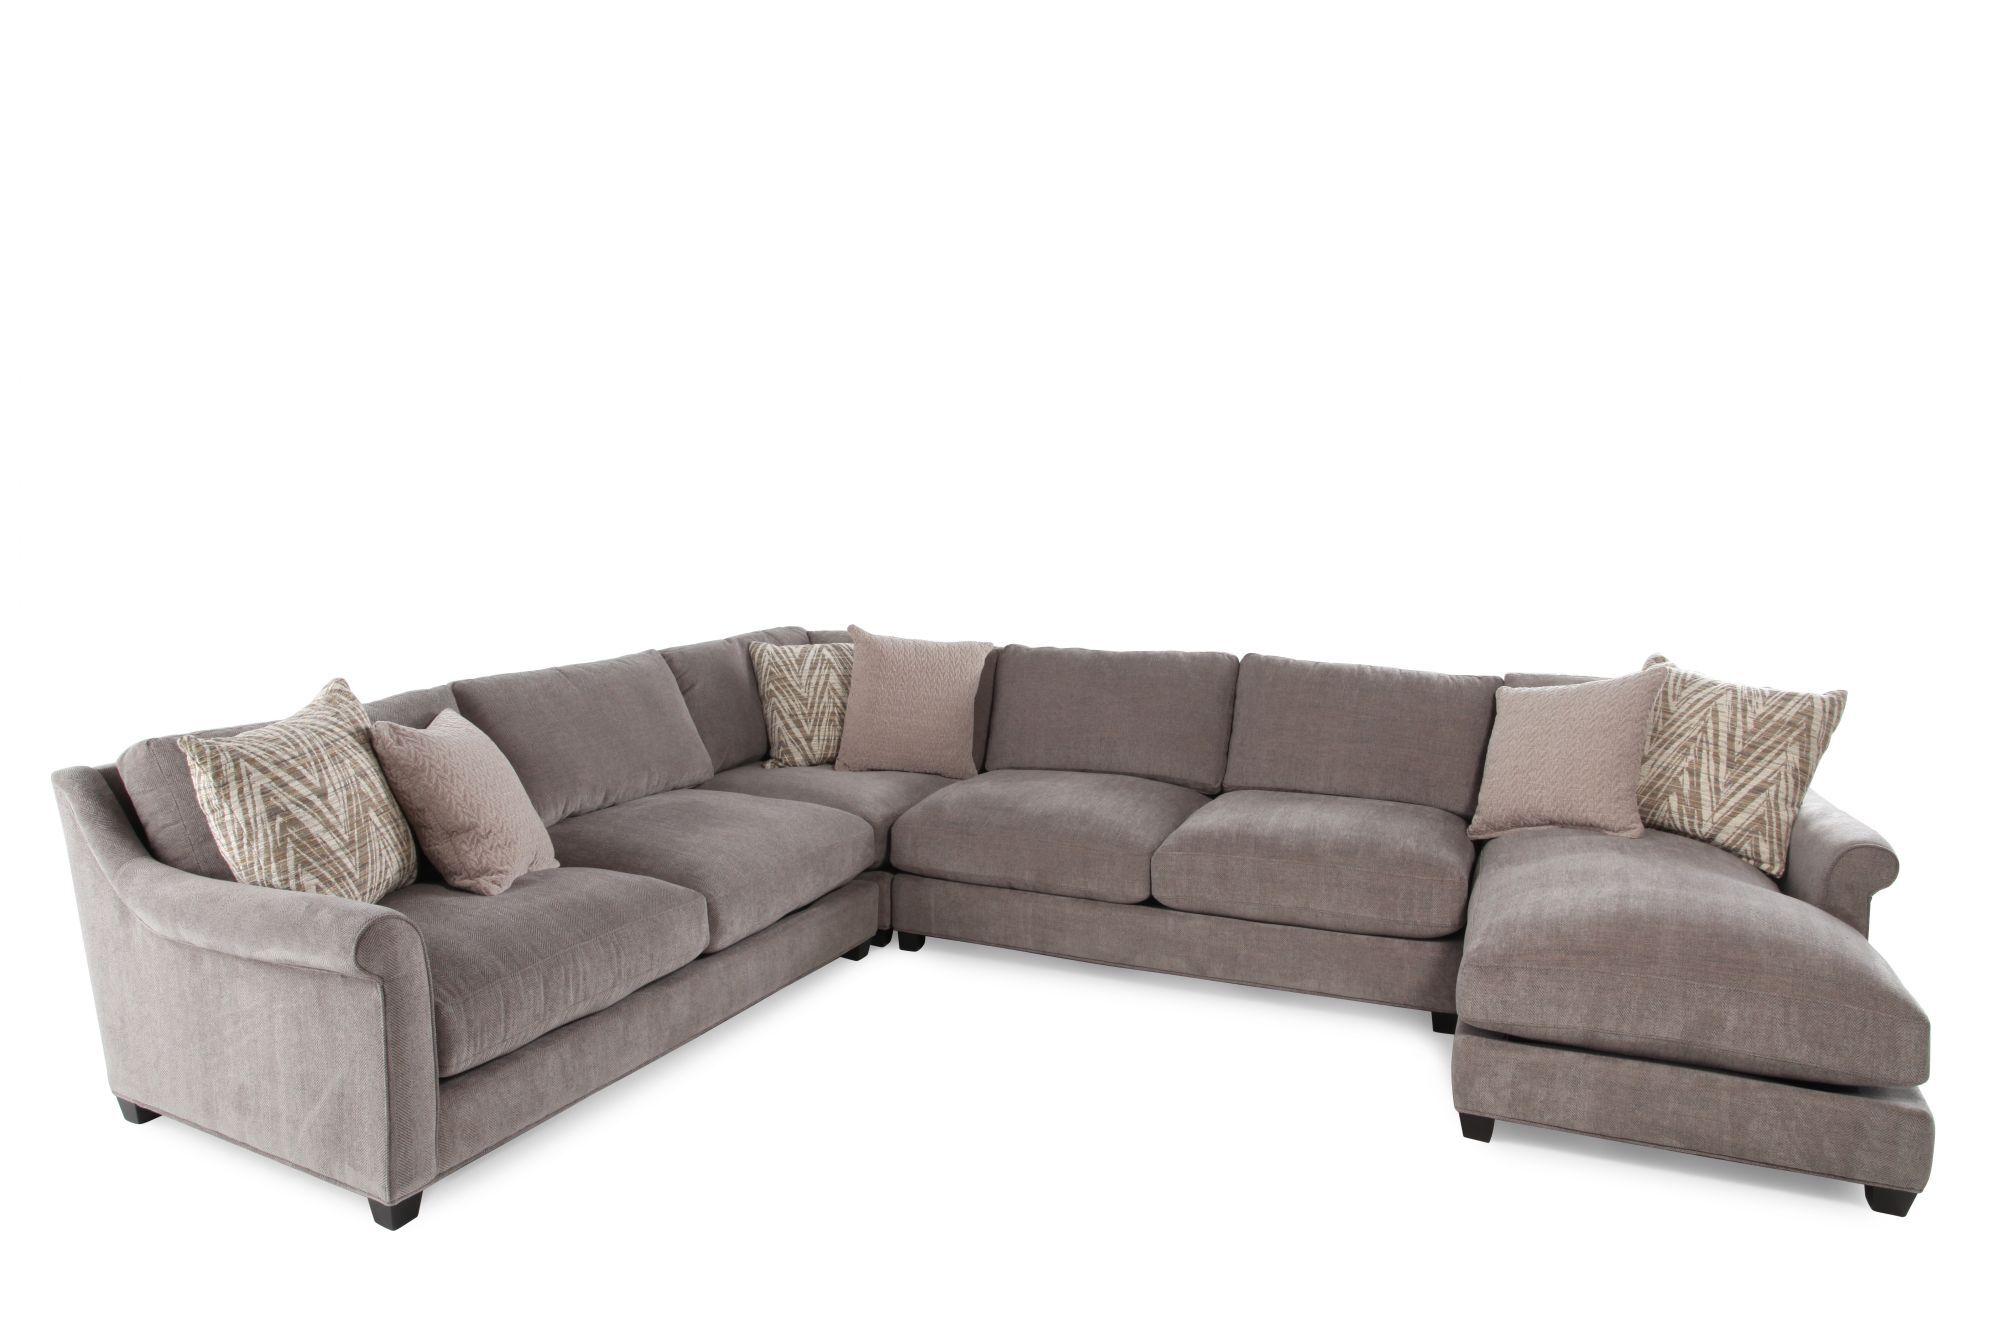 Jonathan Louis Shearson Four-Piece Sectional ...  sc 1 st  Mathis Brothers : jonathan louis sectional choices - Sectionals, Sofas & Couches